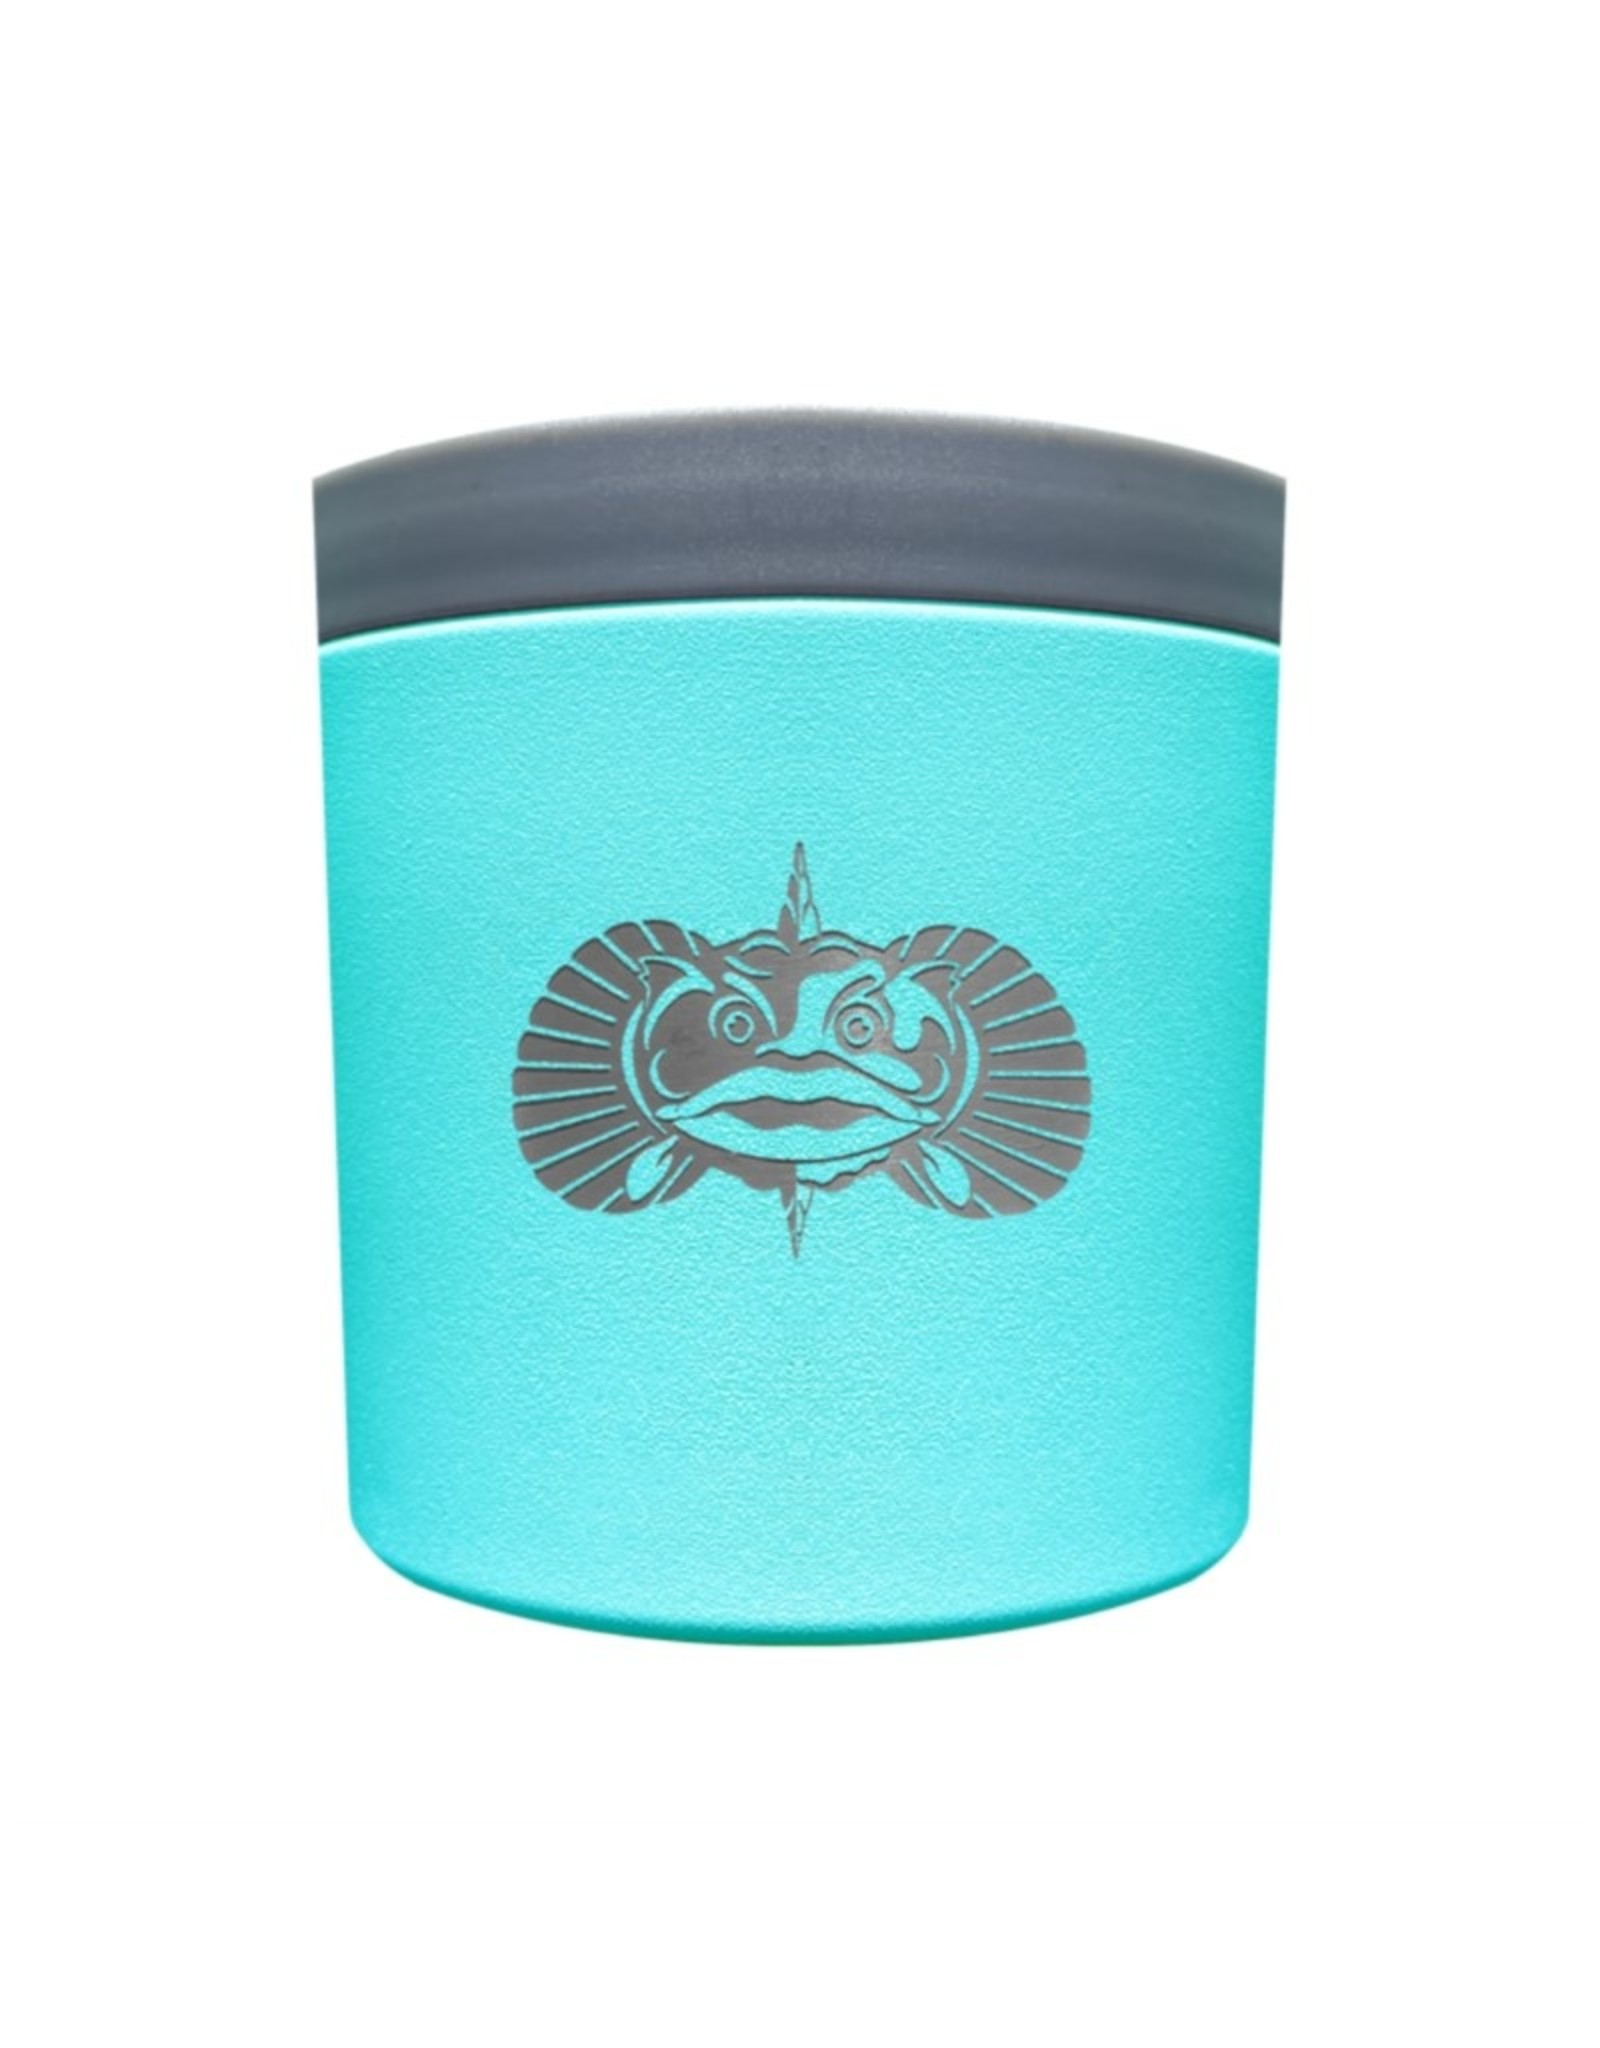 Toadfish Non-Tipping Any Beverage Holder-Teal